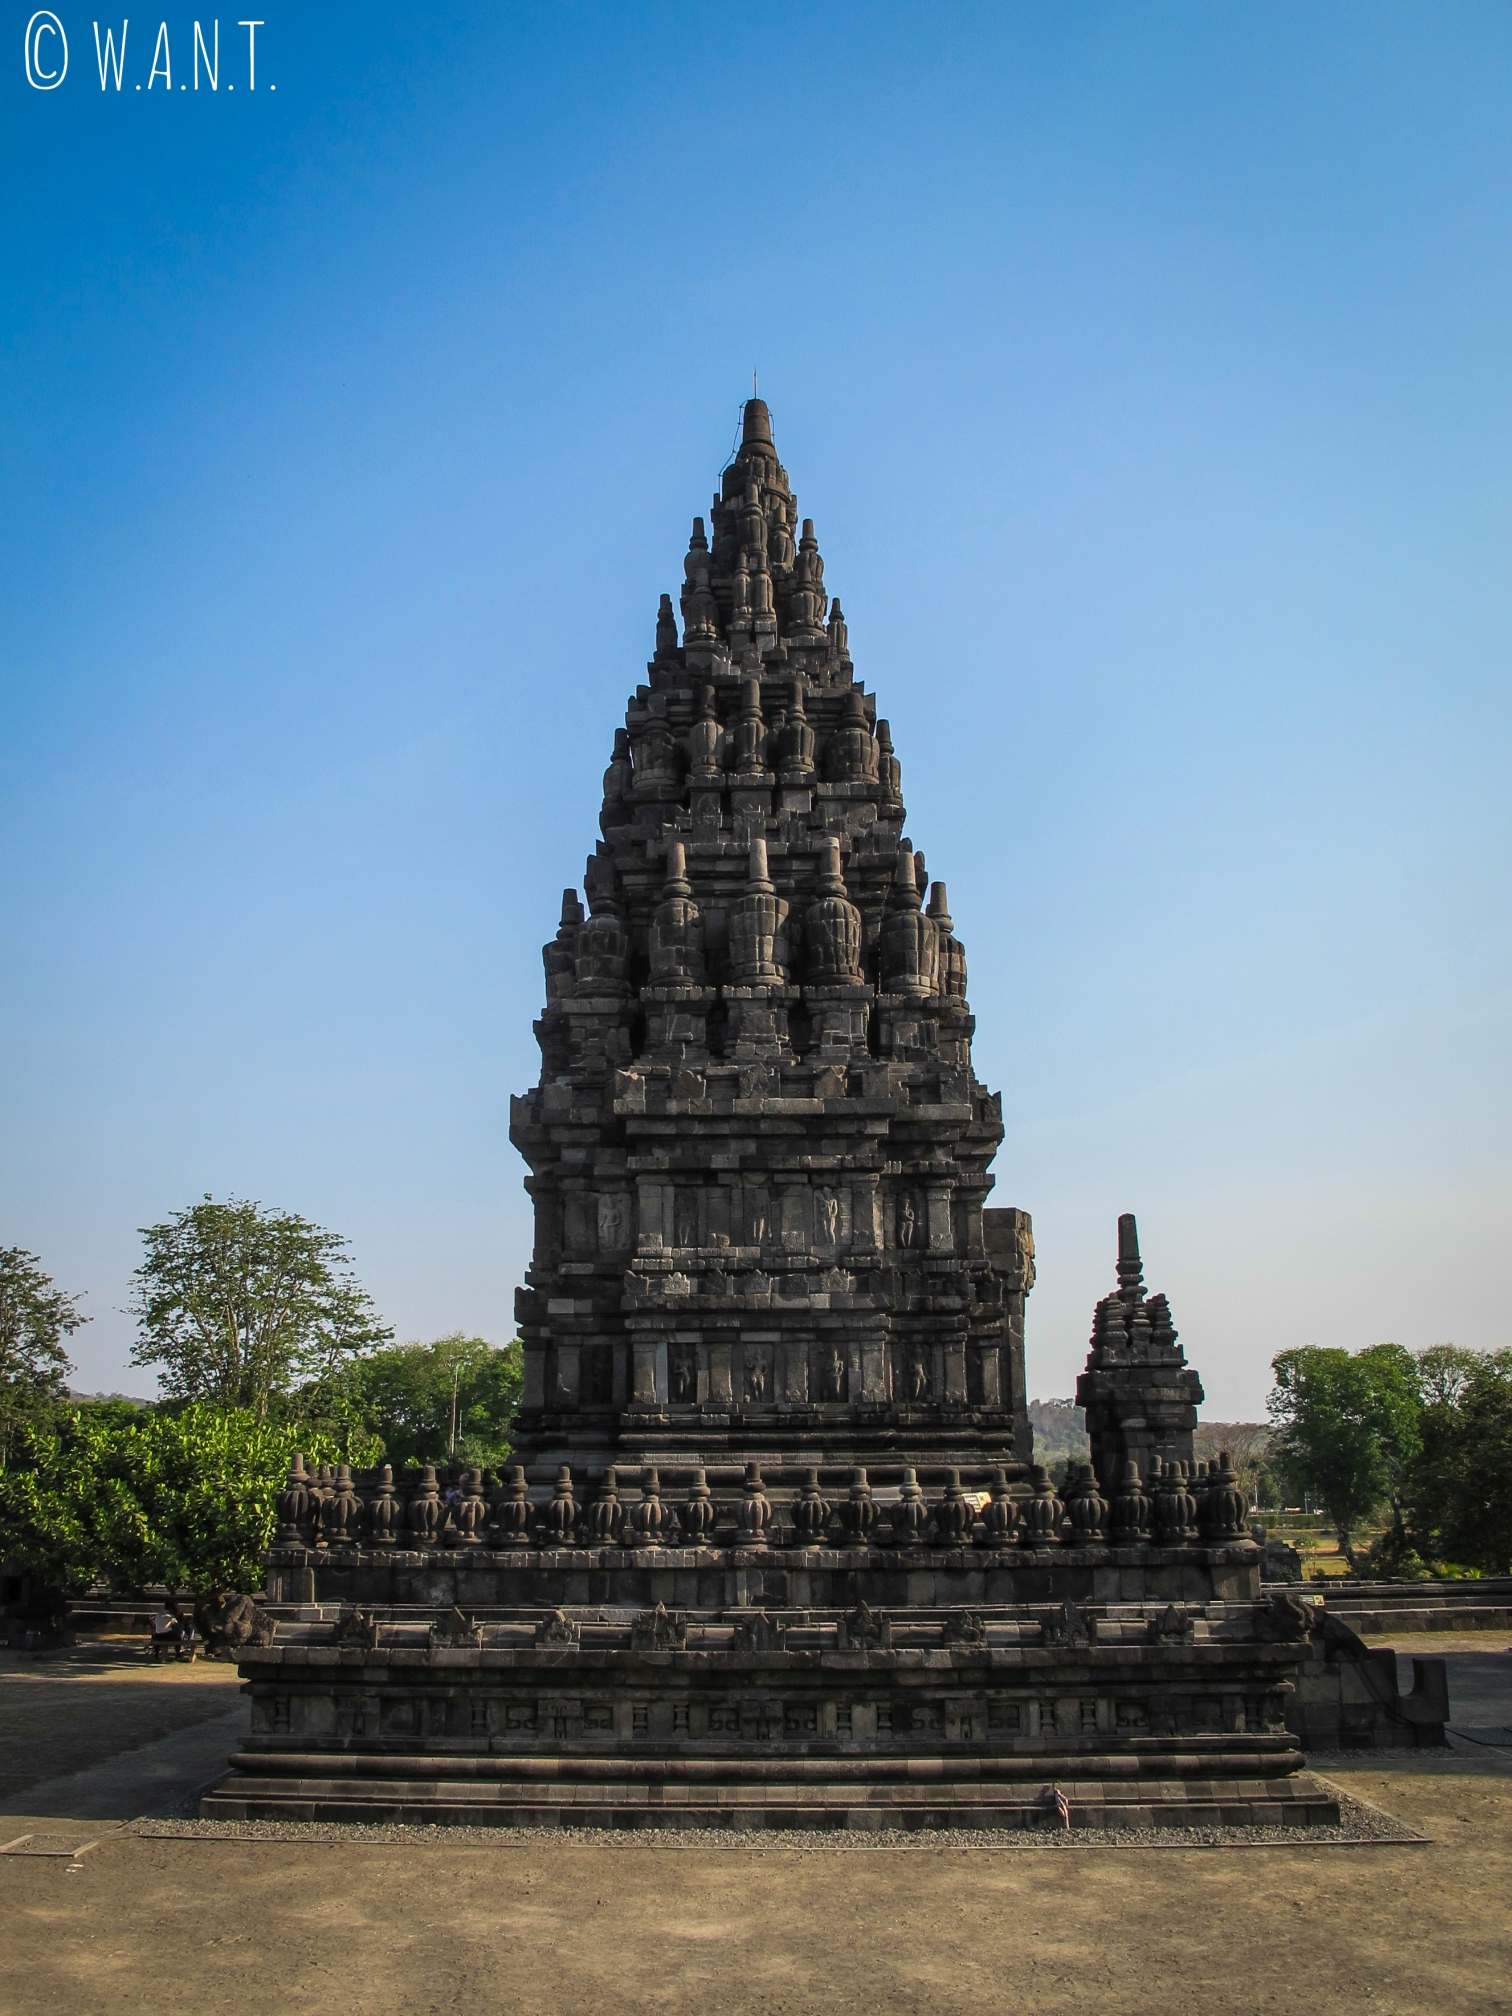 Temple secondaire de l'ensemble de Prambanan